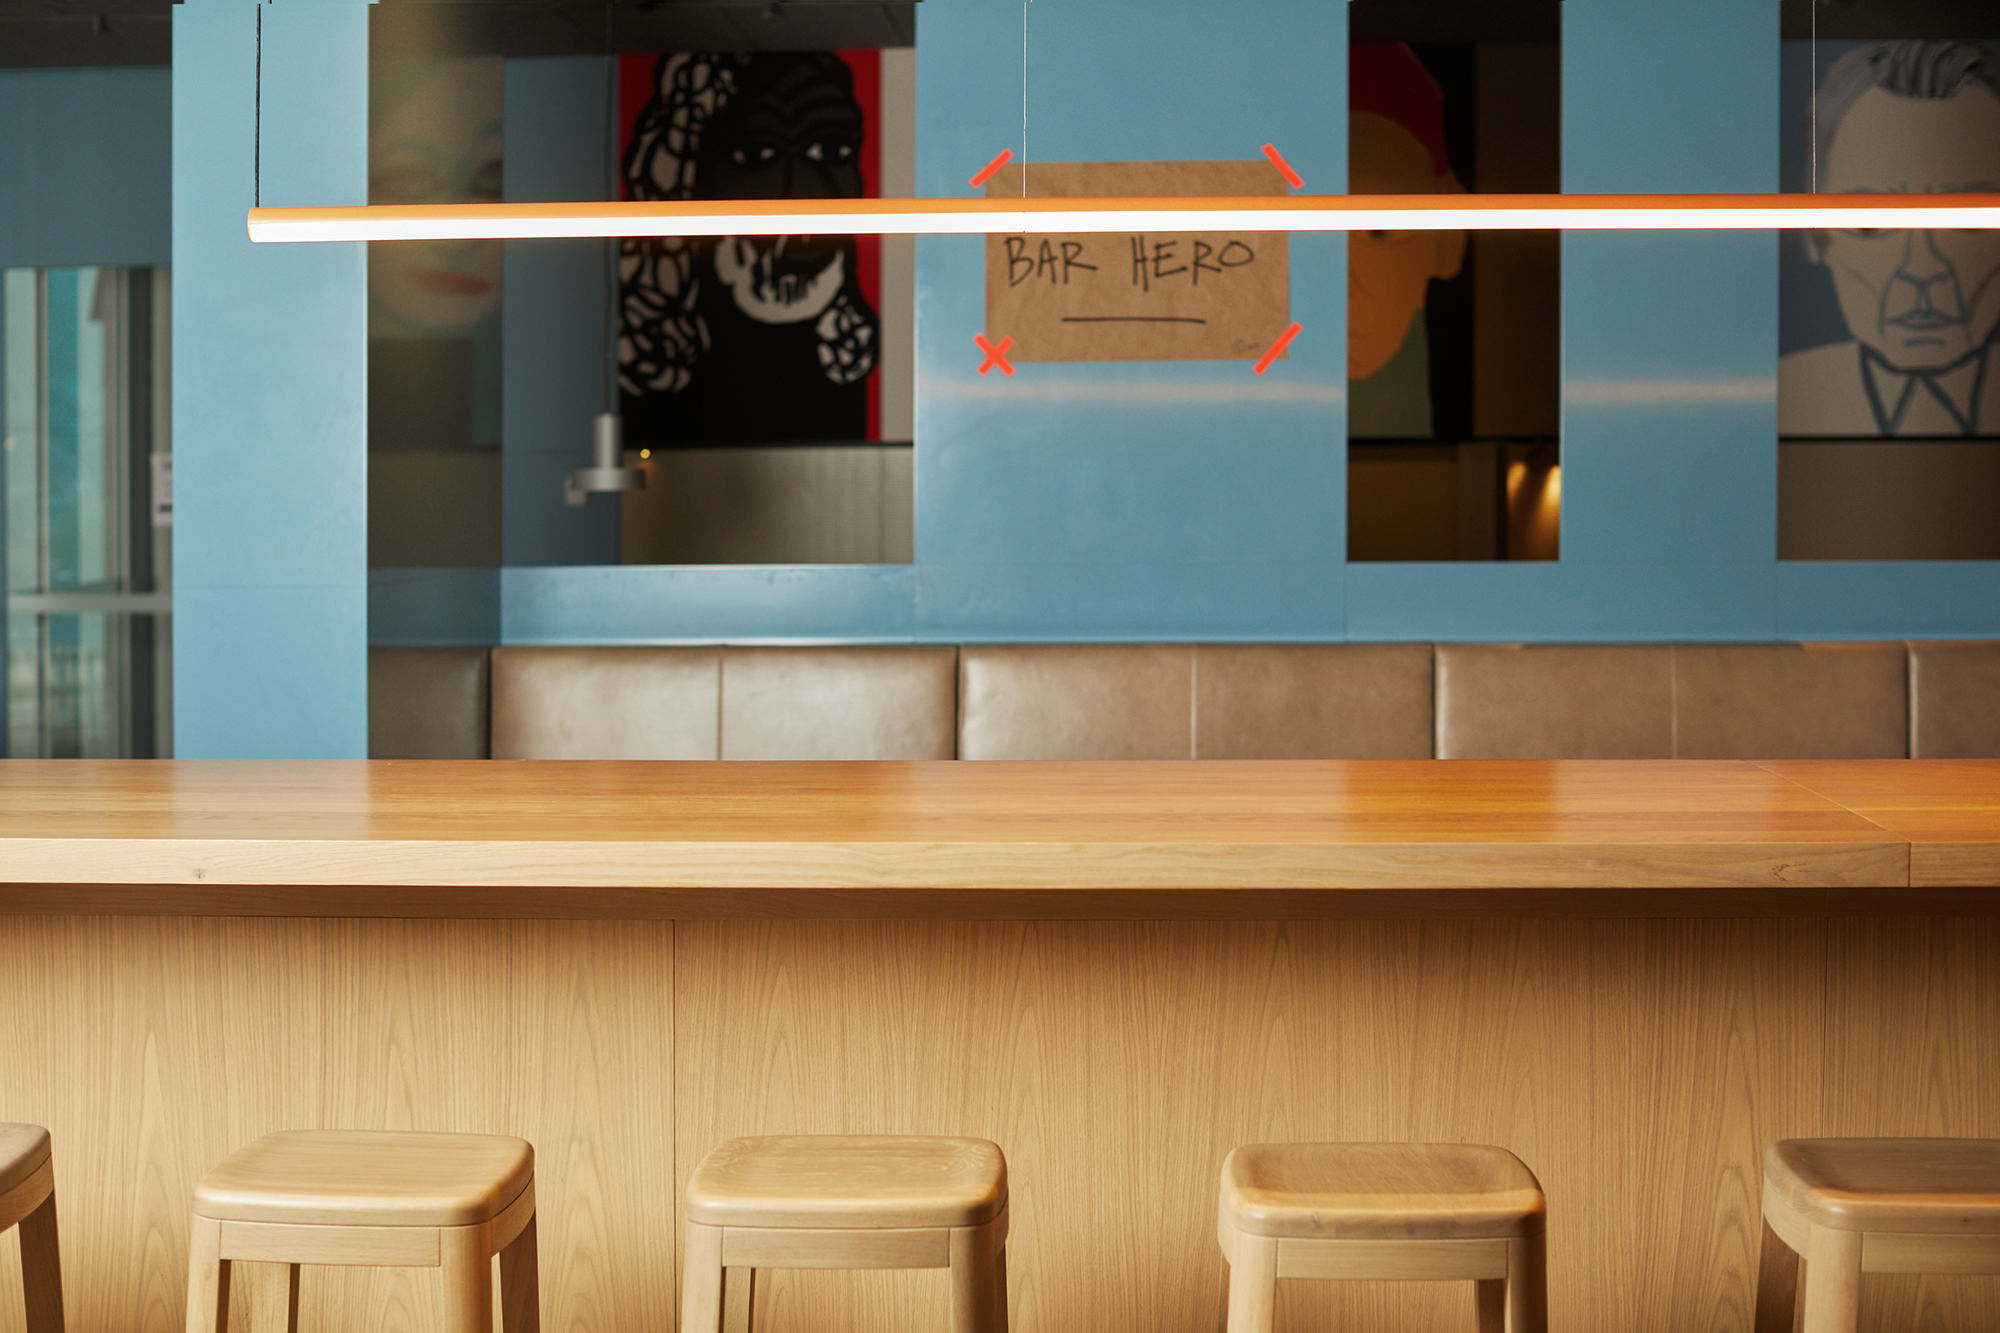 Hero - the new flagship restaurant at Melbourne's Australian Centre for the Moving Image in Federation Square.